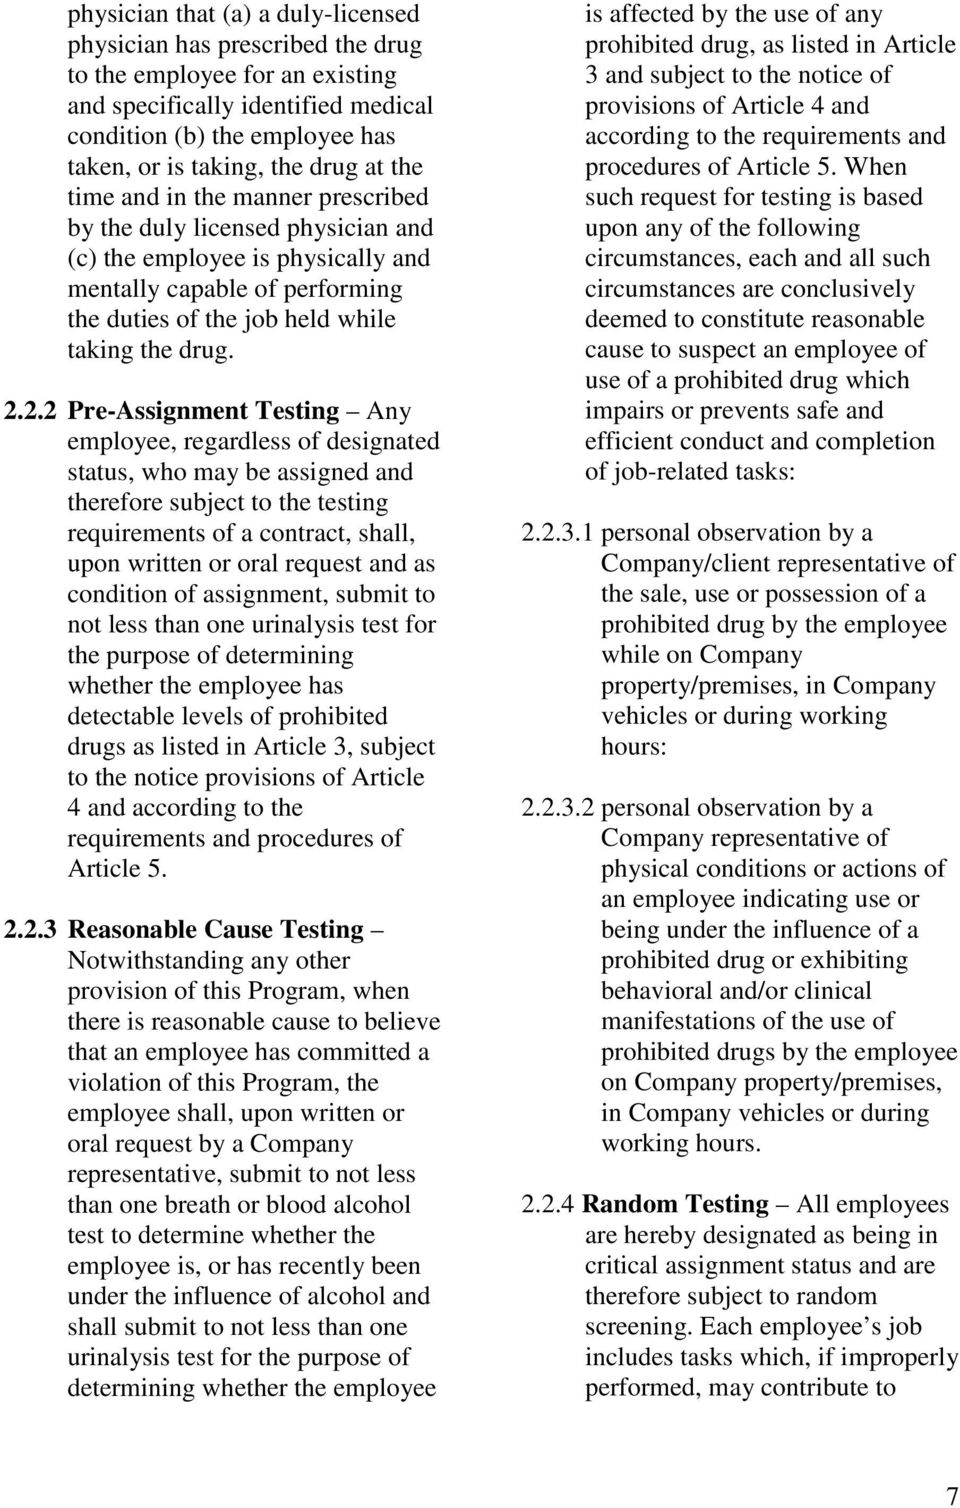 2.2 Pre-Assignment Testing Any employee, regardless of designated status, who may be assigned and therefore subject to the testing requirements of a contract, shall, upon written or oral request and